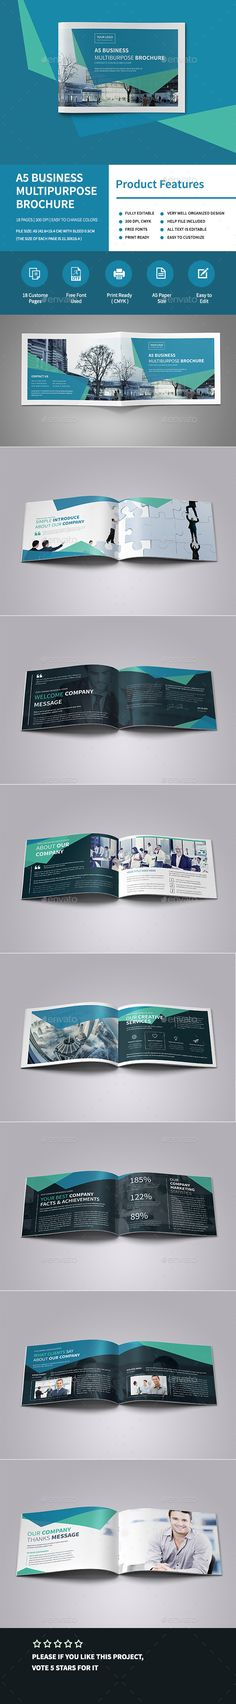 21+ Free Brochure Design Templates Brochures, Free brochure and - brochure template on word